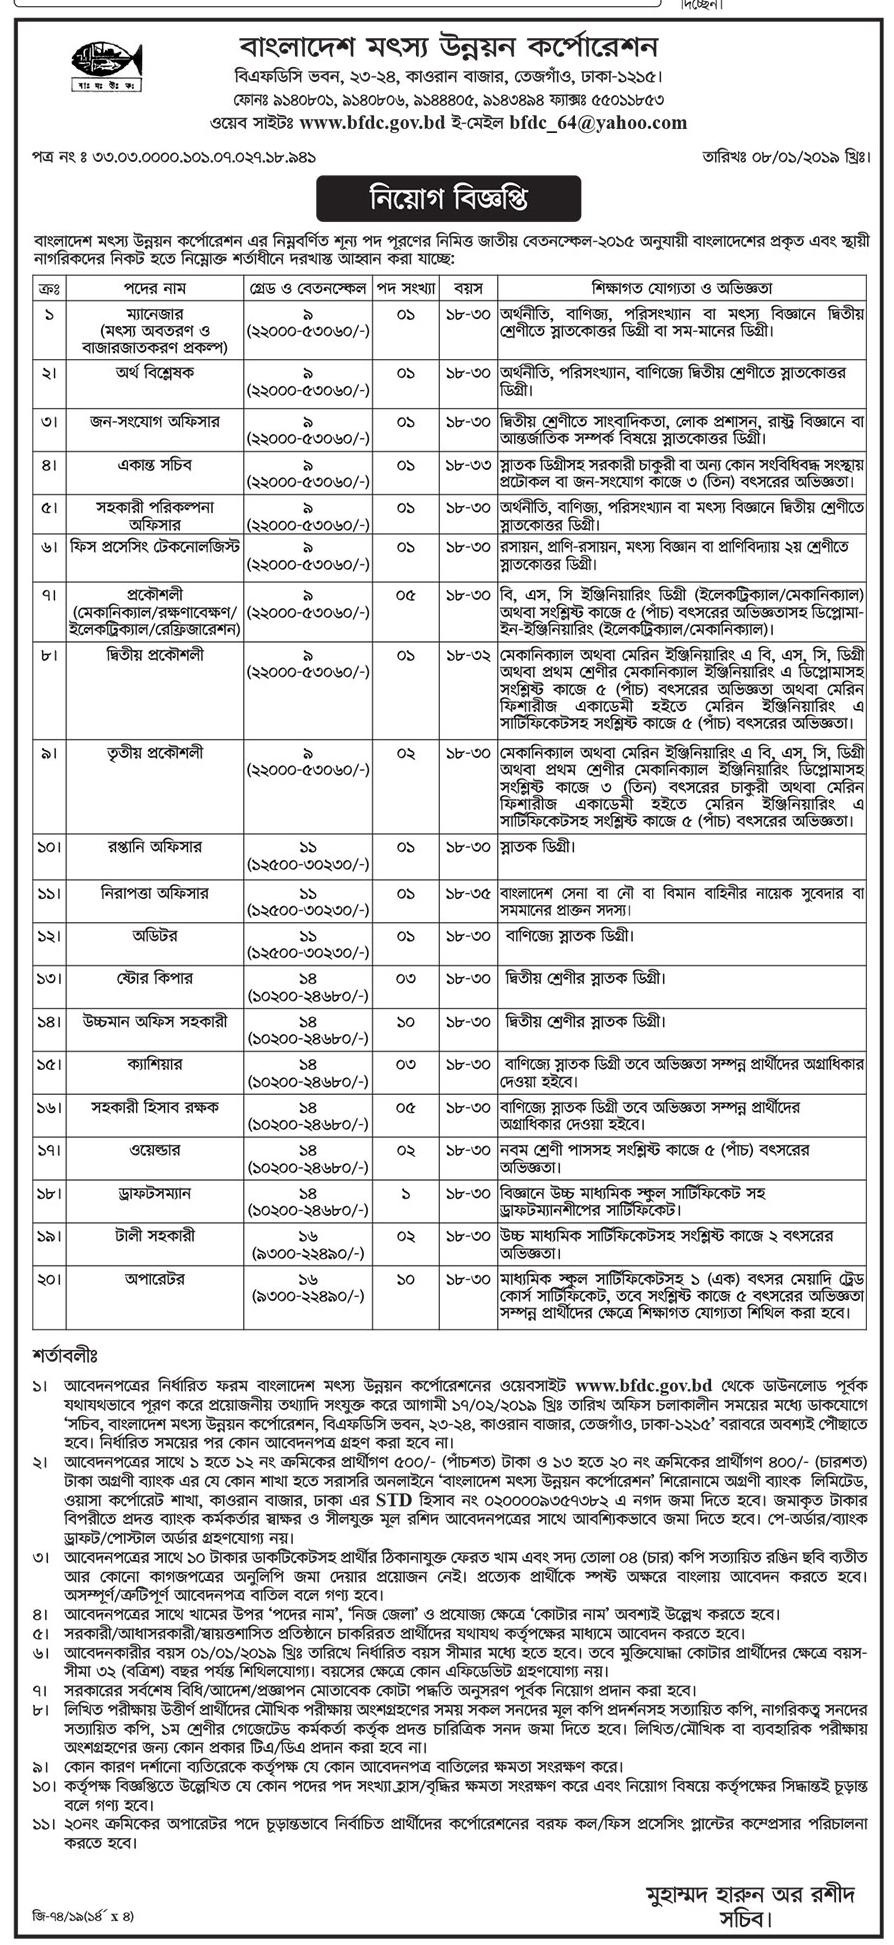 Bangladesh Fisheries Development Corporation BFDC Job Circular 2019